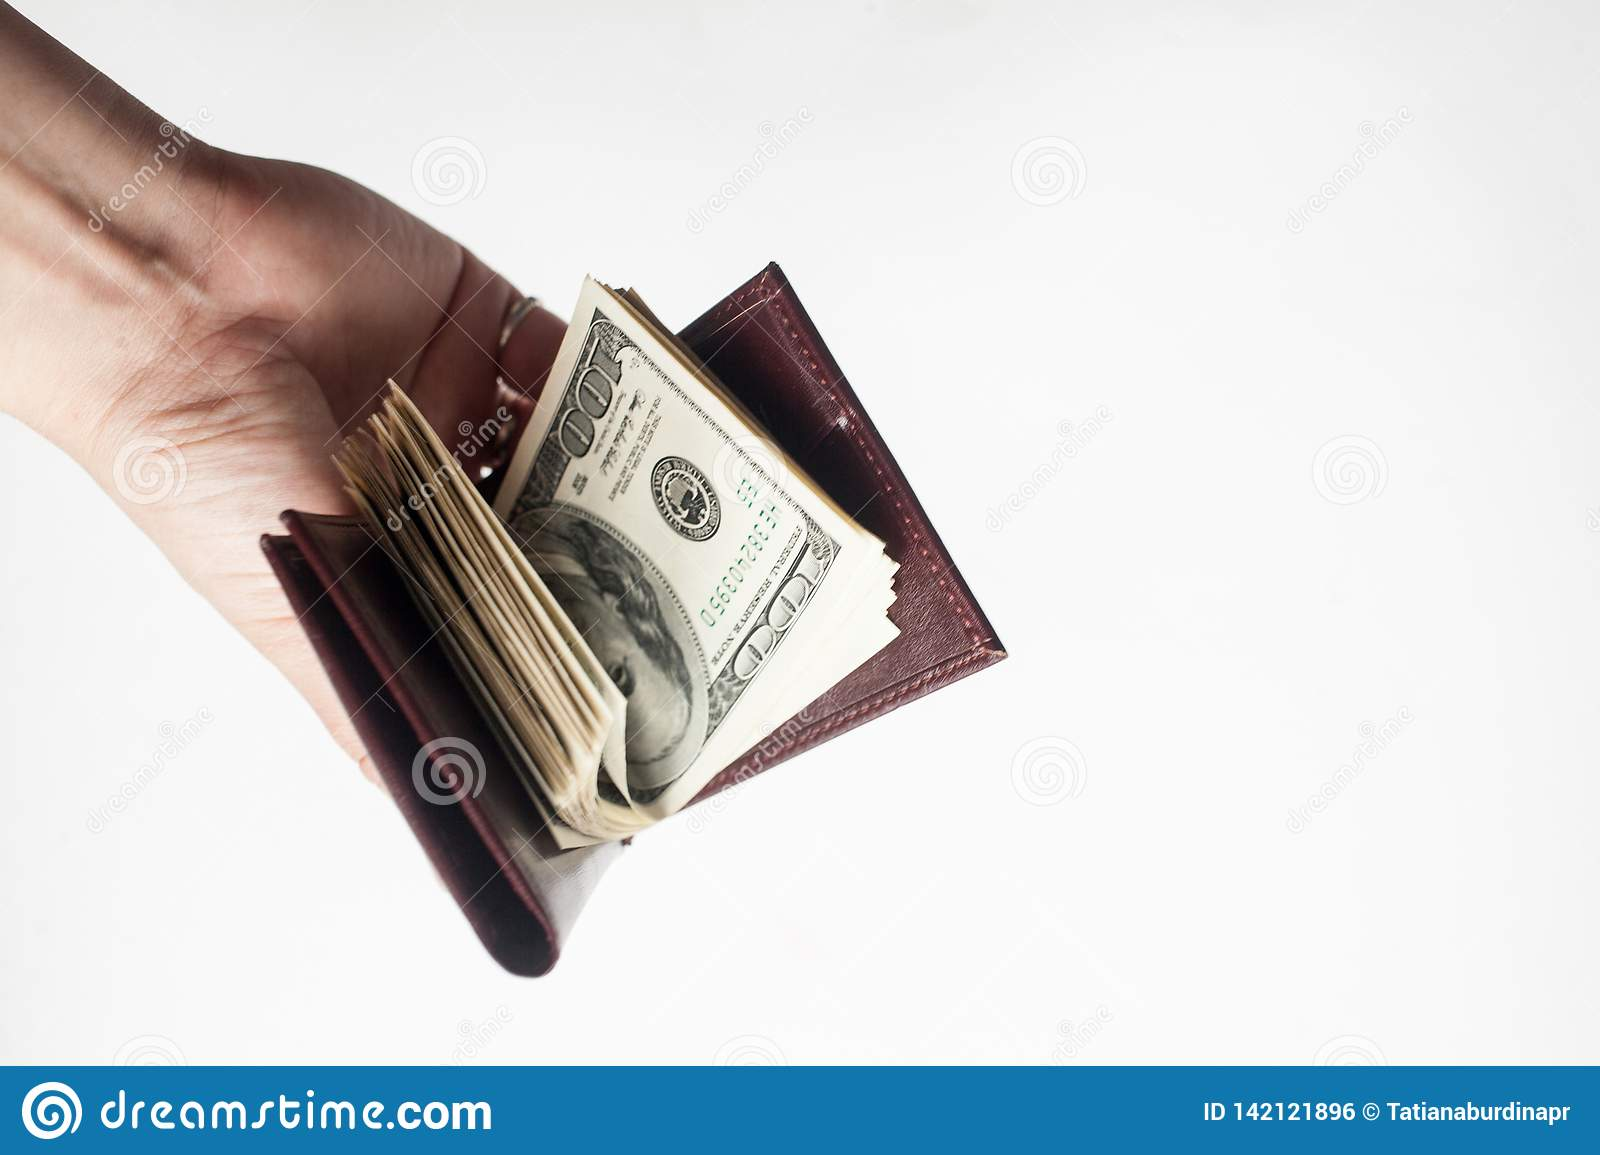 A hand holding a wallet full of one hundred dollar bills isolated over a white background